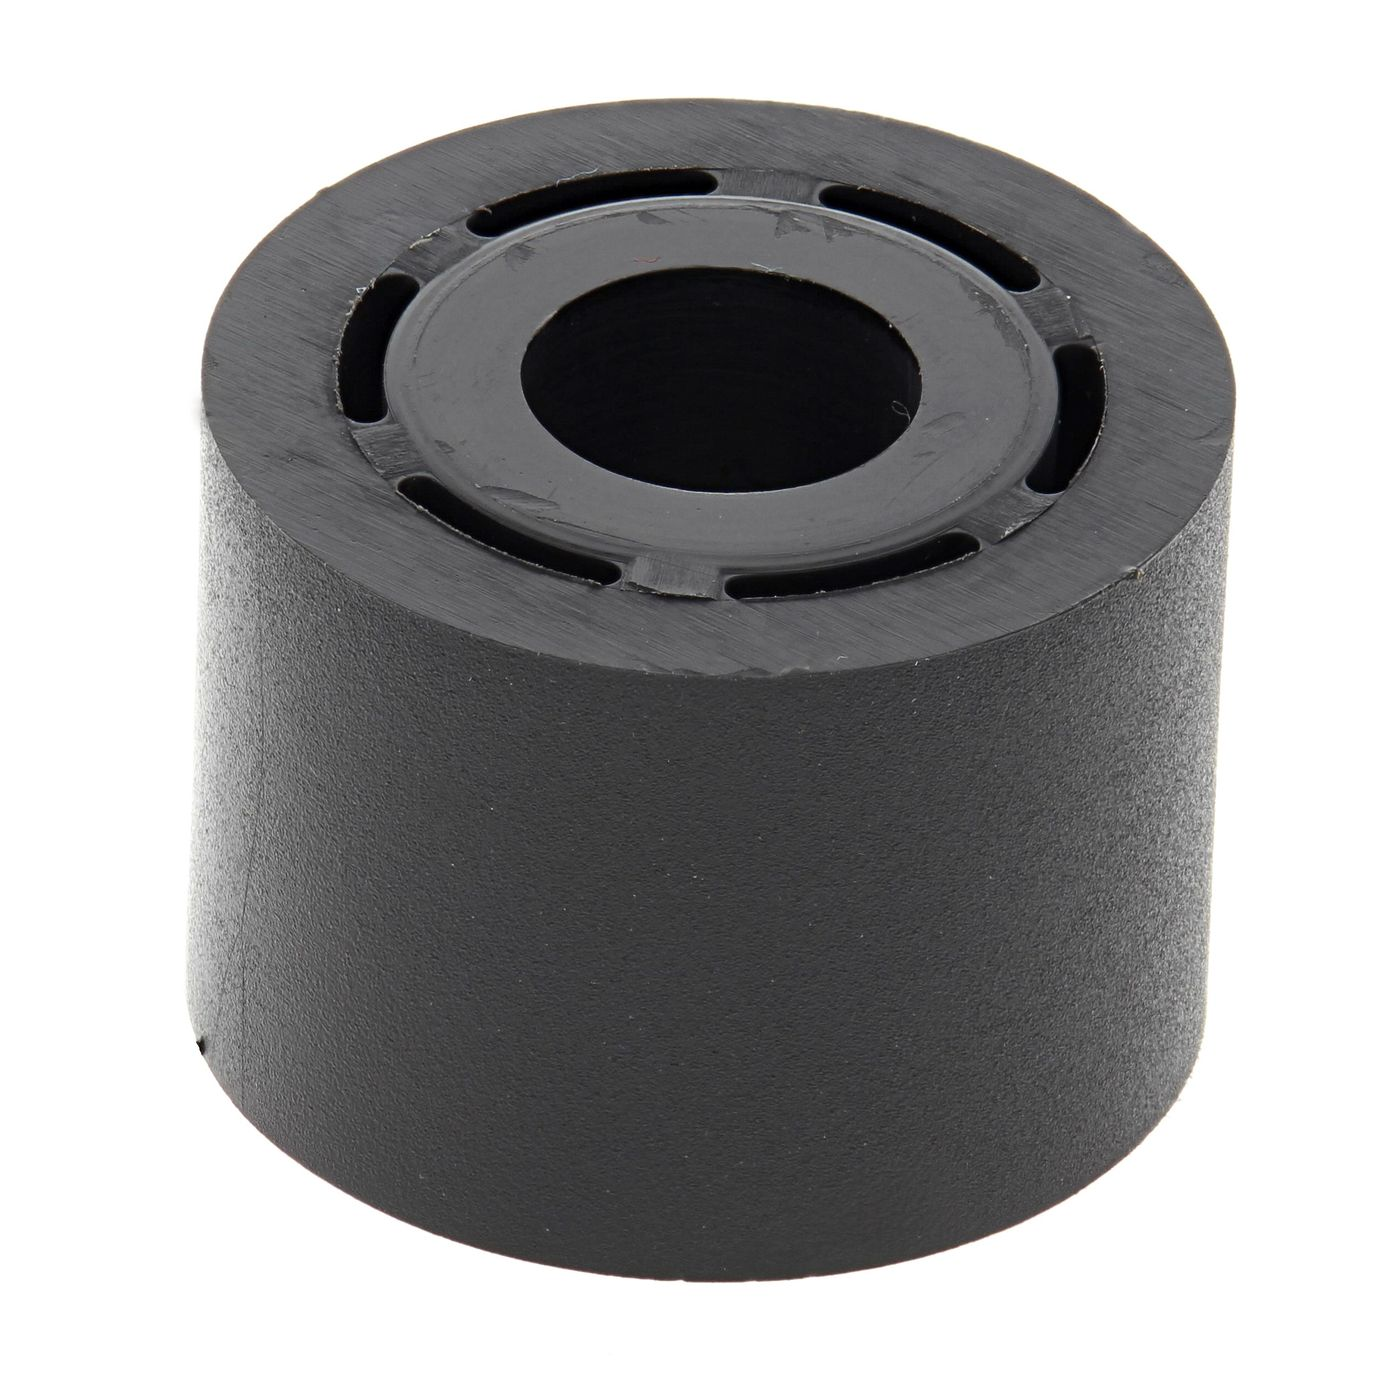 Wrp Chain Rollers - WRP795009 image